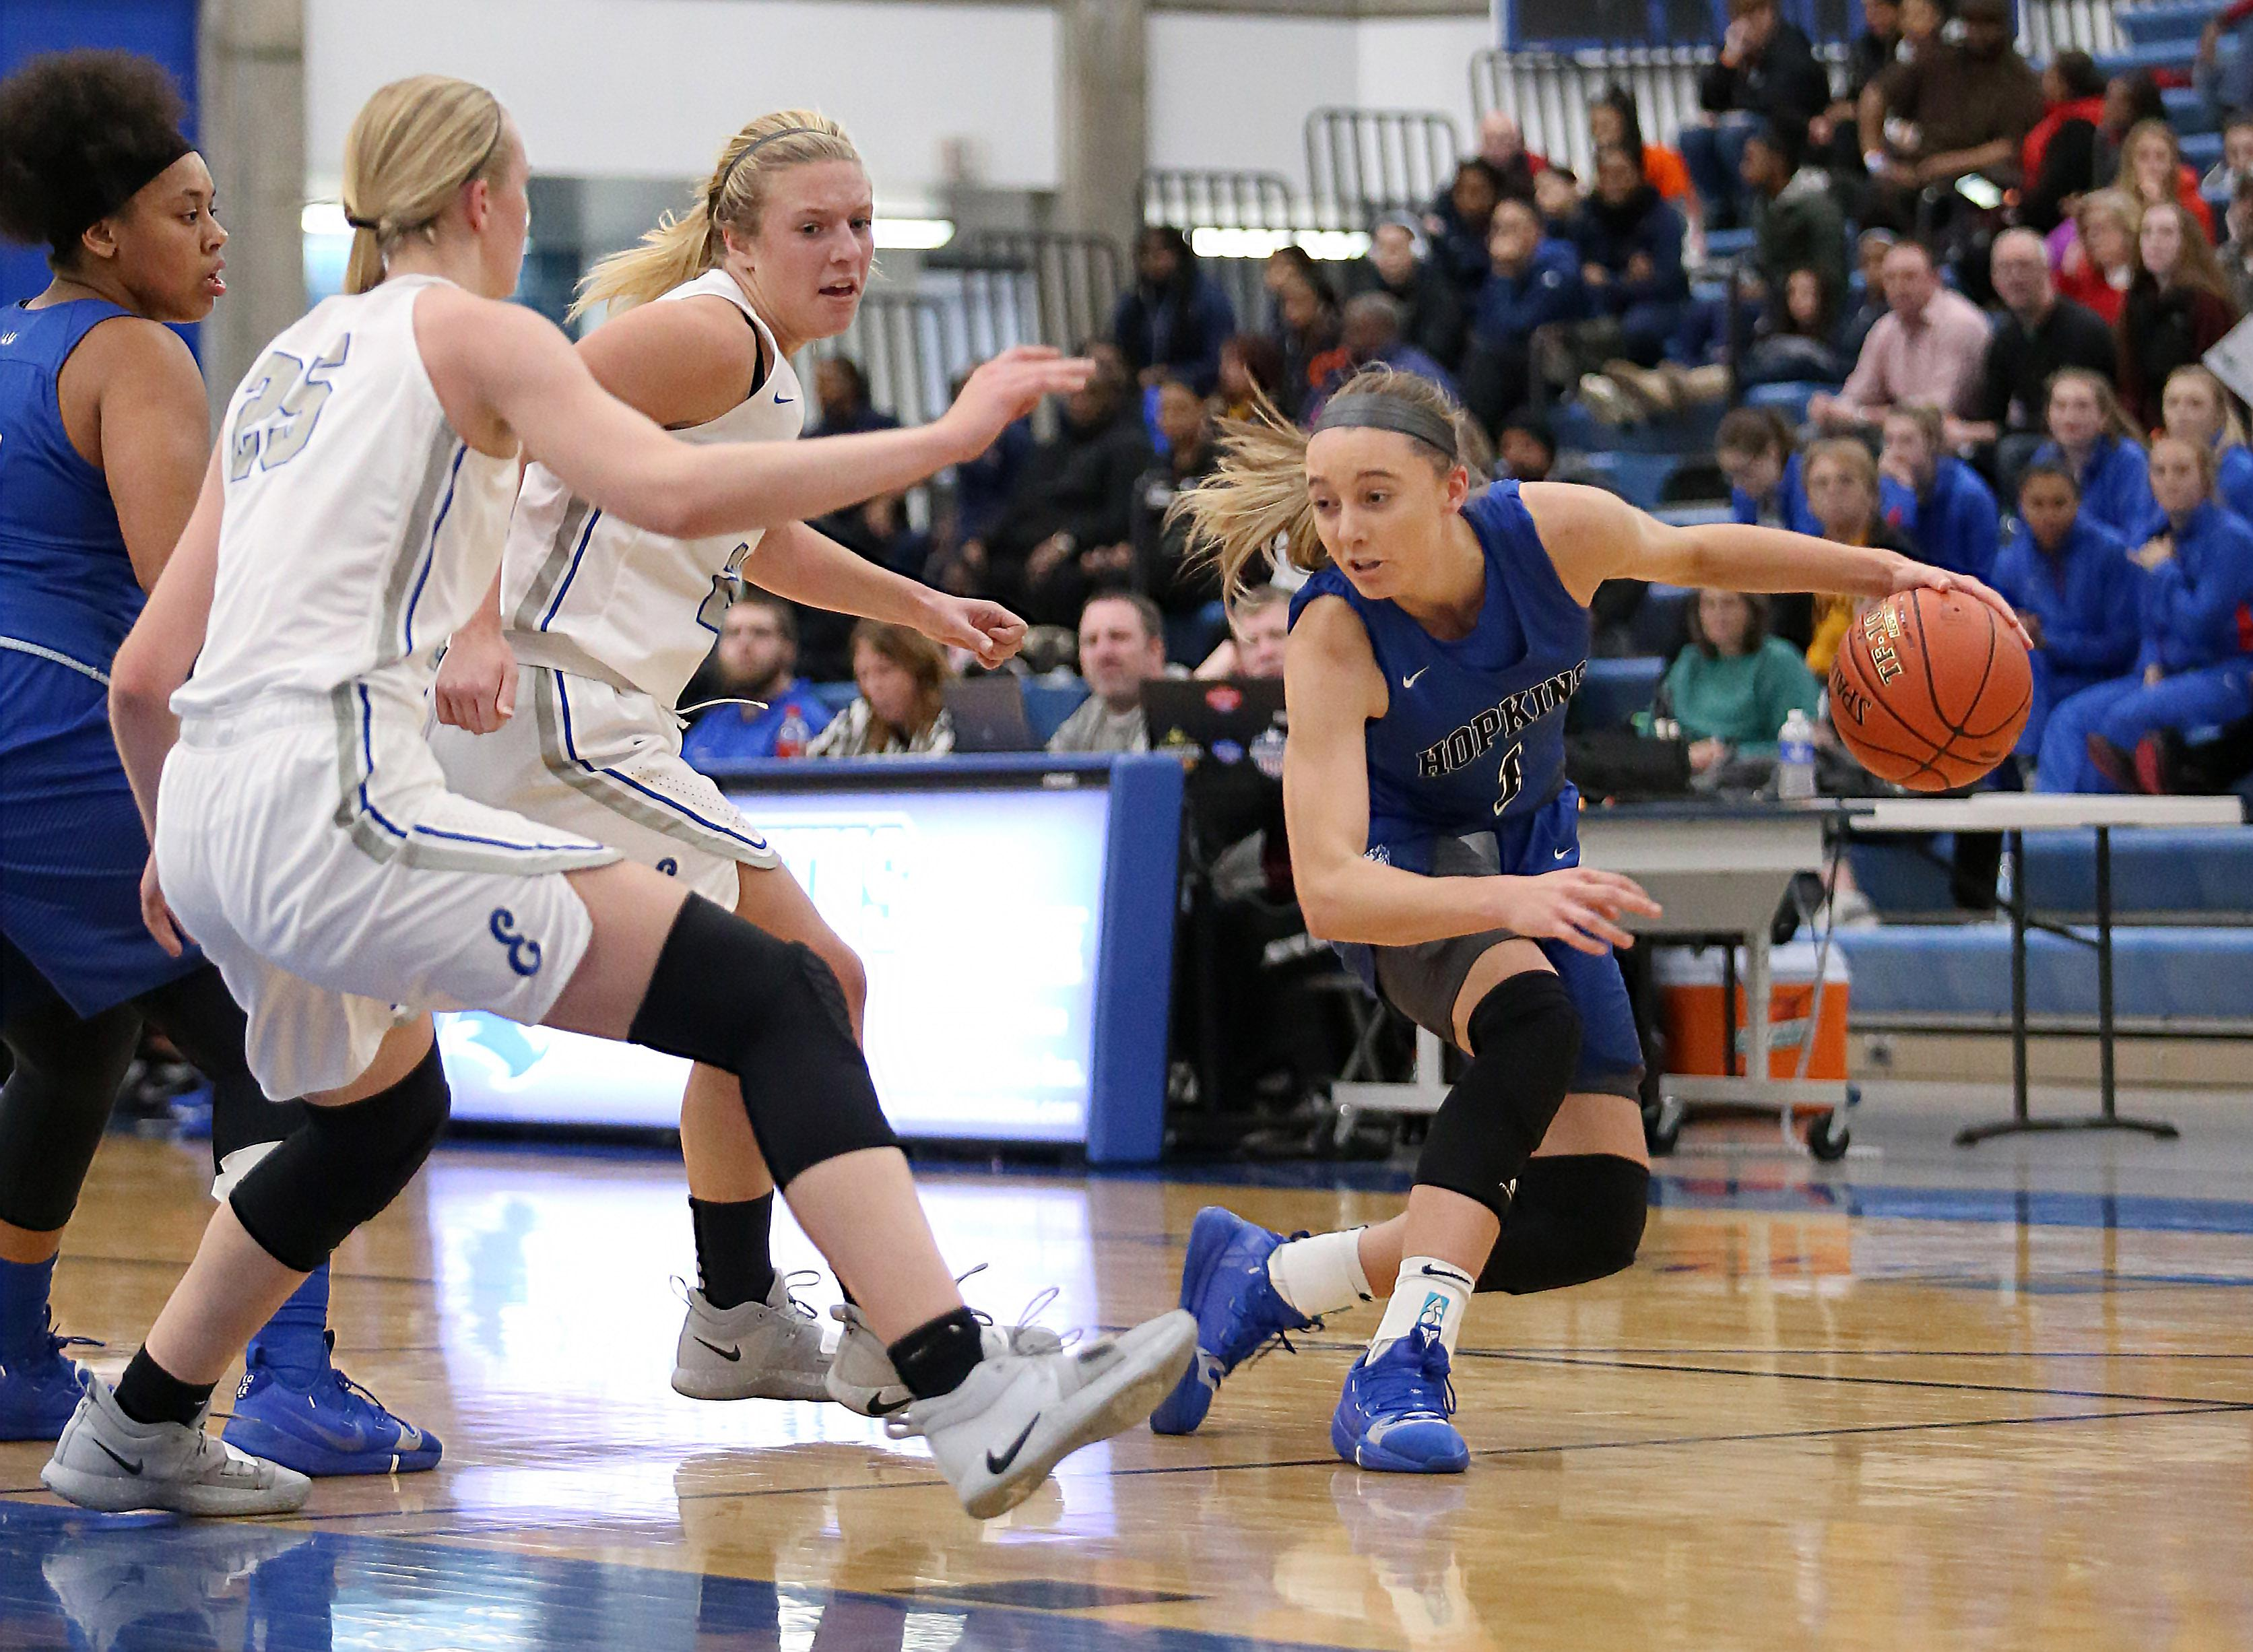 Paige Bueckers works her way past two Eastview defenders on Saturday. Photo by Cheryl Myers, SportsEngine